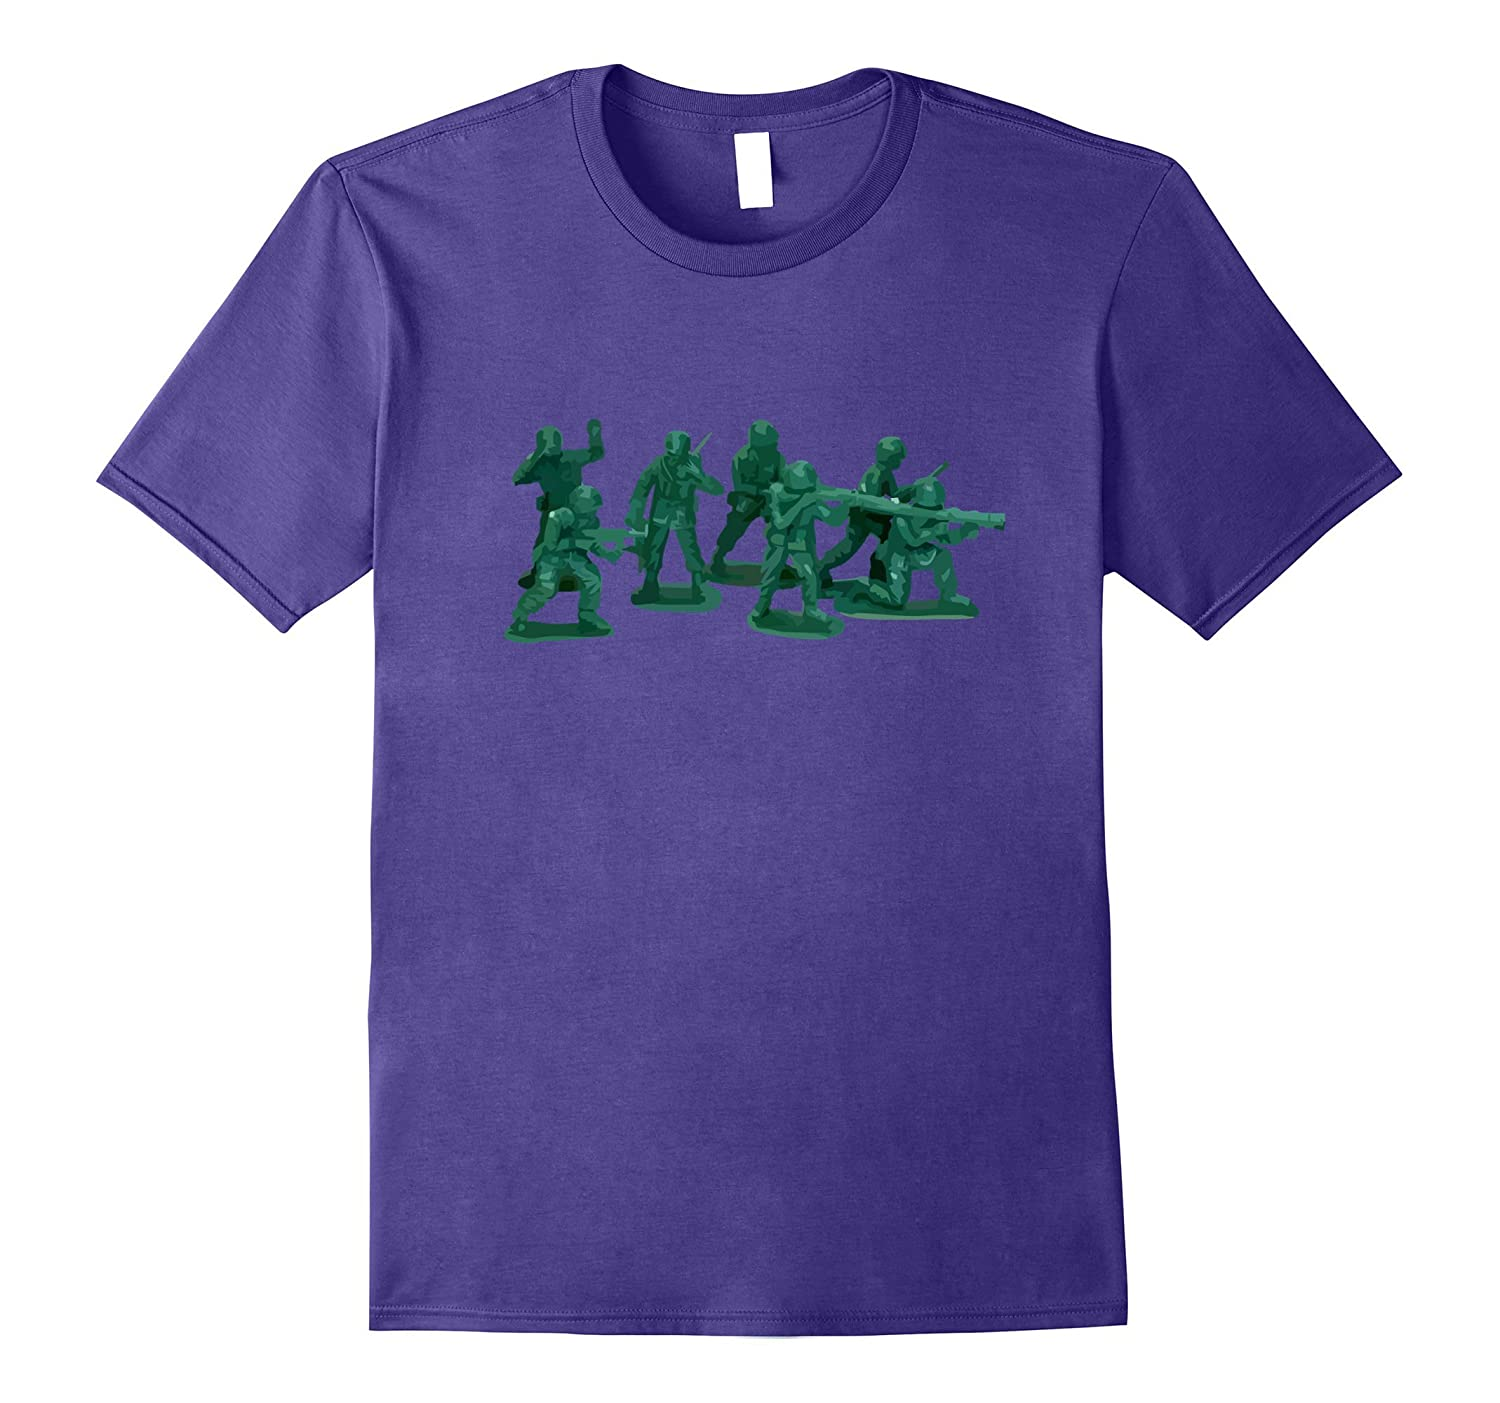 Green Army Man Classic Toys T-Shirt-TJ